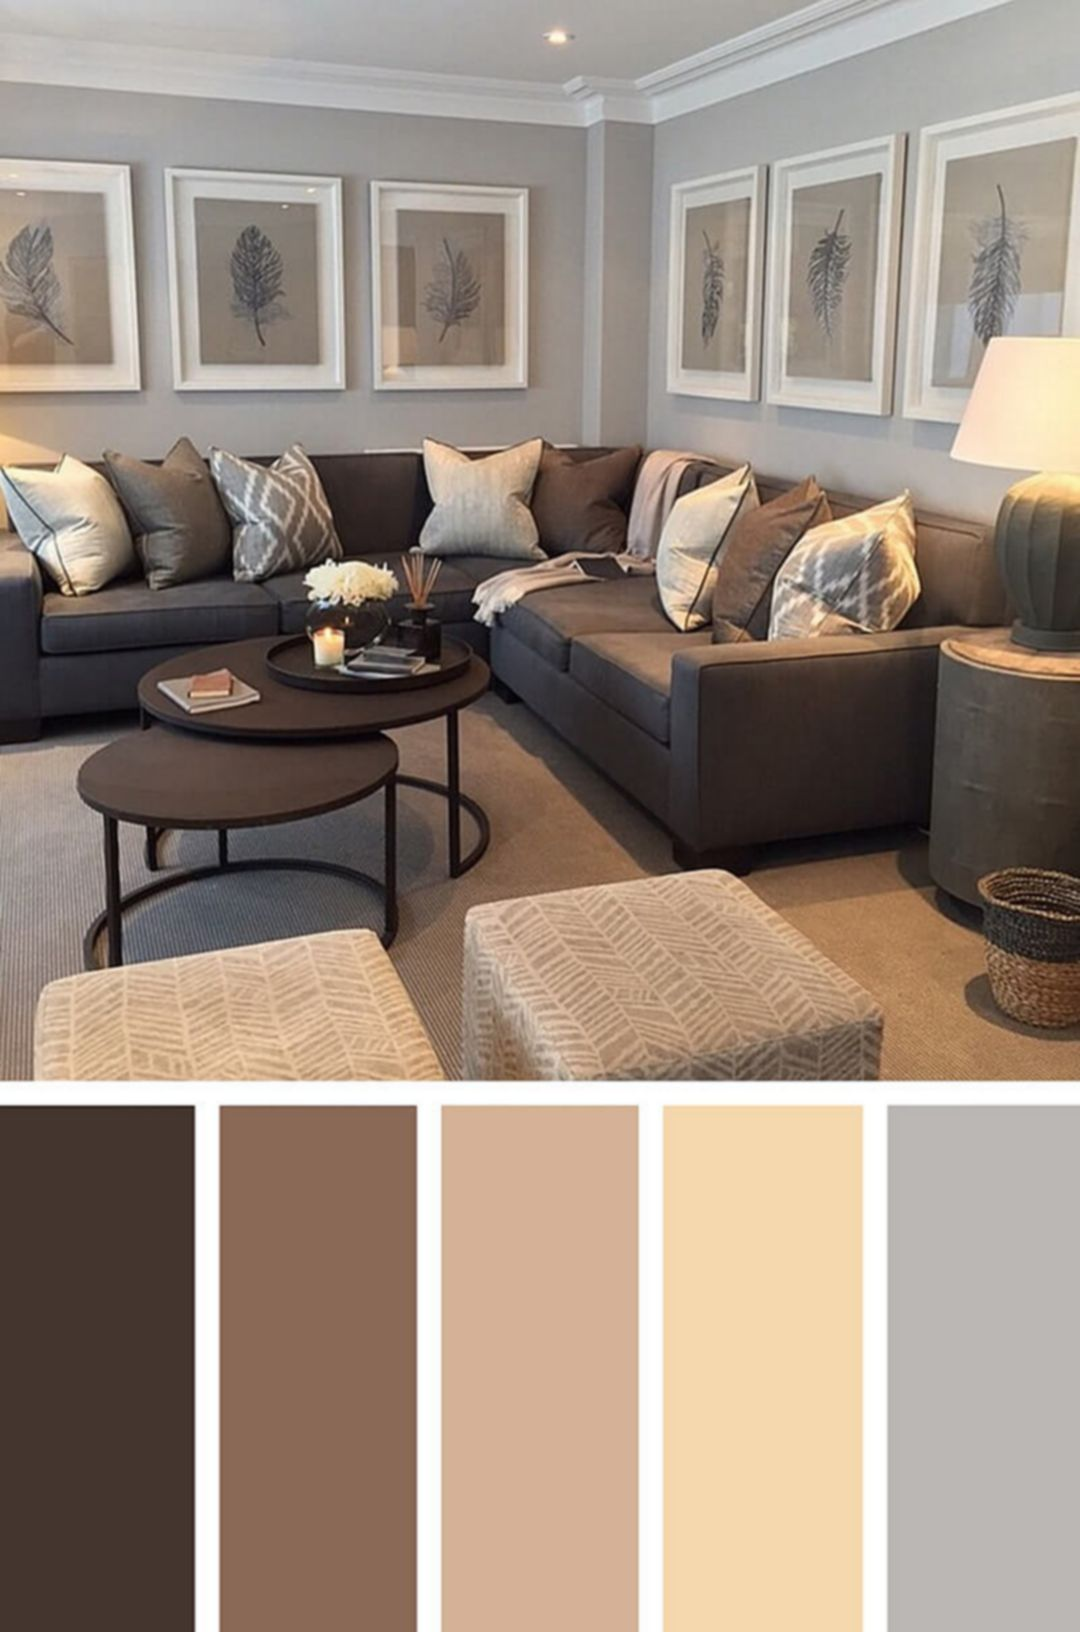 25 Best Color Harmony Ideas For Living Room Looks More Comfortable Living Room Color Schemes Living Room Color Paint Colors For Living Room